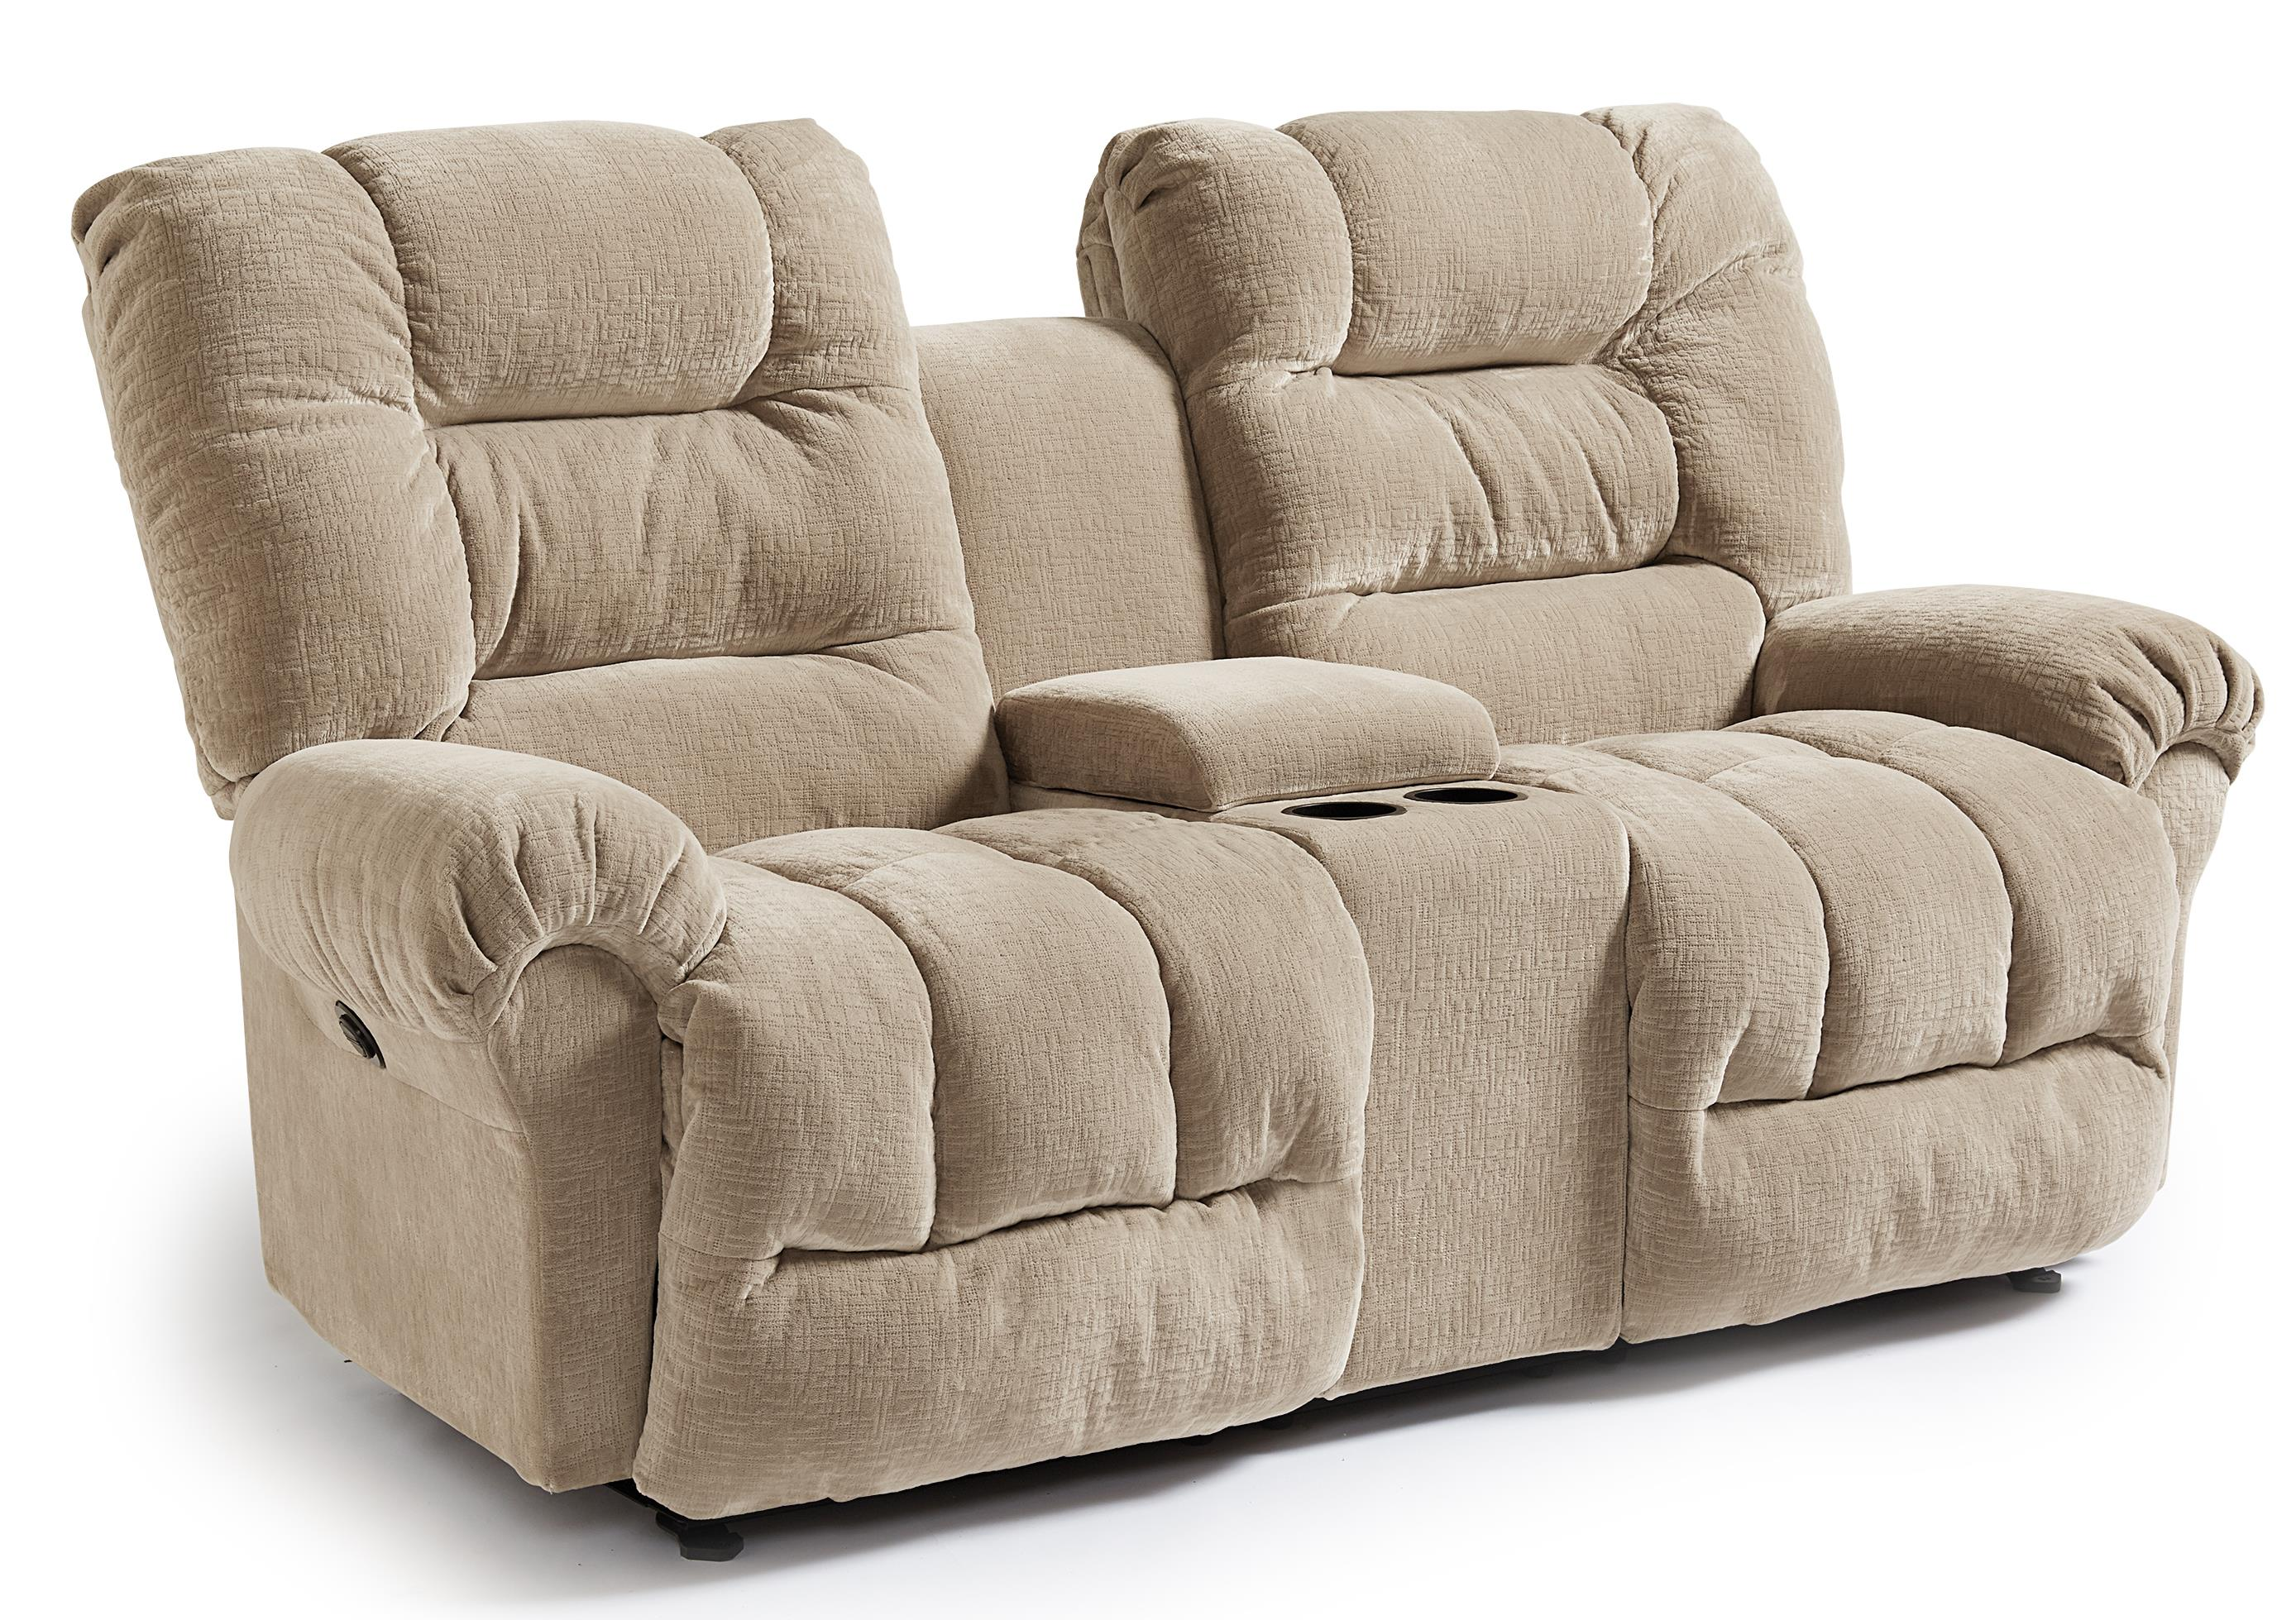 Casual Power Rocking Reclining Loveseat With Cupholder Console By Best Home Furnishings Wolf